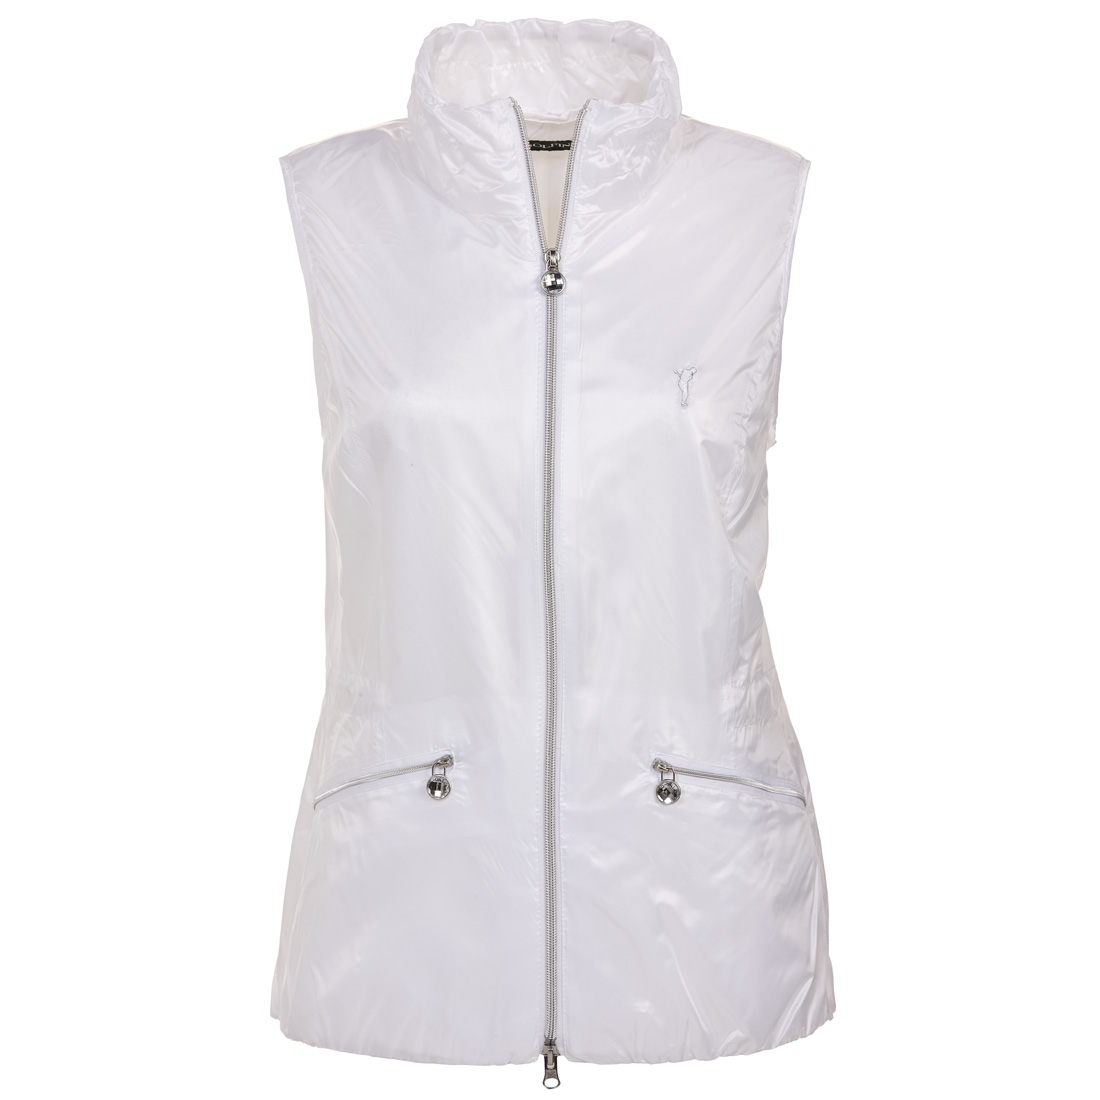 Ladies' gilet with drawstring waist